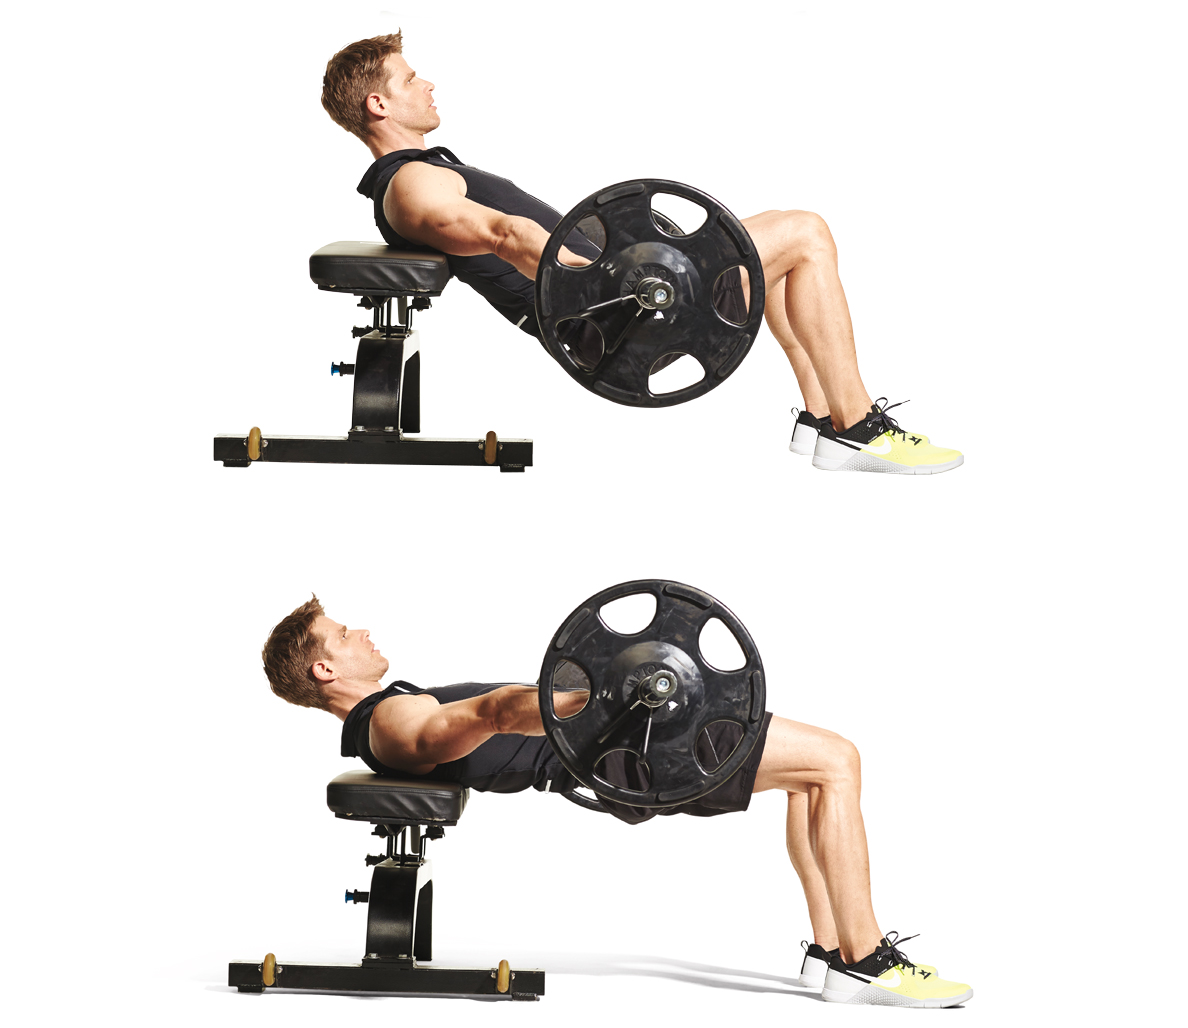 Best leg exercises weight lifting